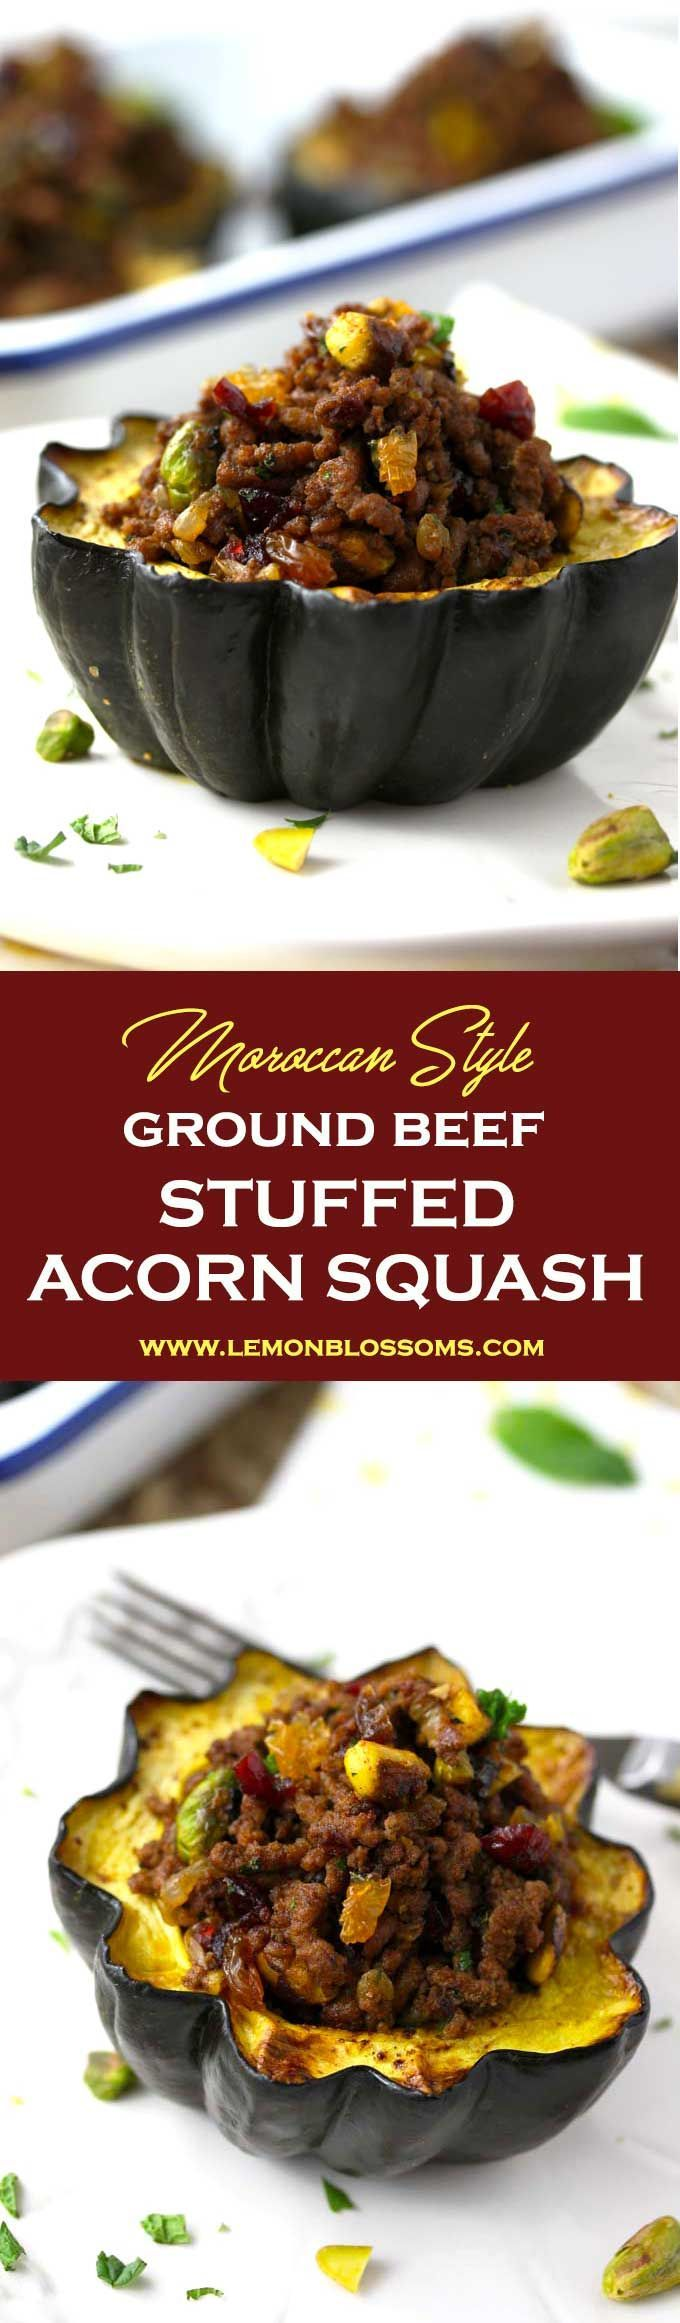 This delicious Stuffed Acorn Squash has a great balance of savory and sweet. Filled with ground beef seasoned with warm spices, dried cranberries, golden raisins, pistachios, parsley and mint.